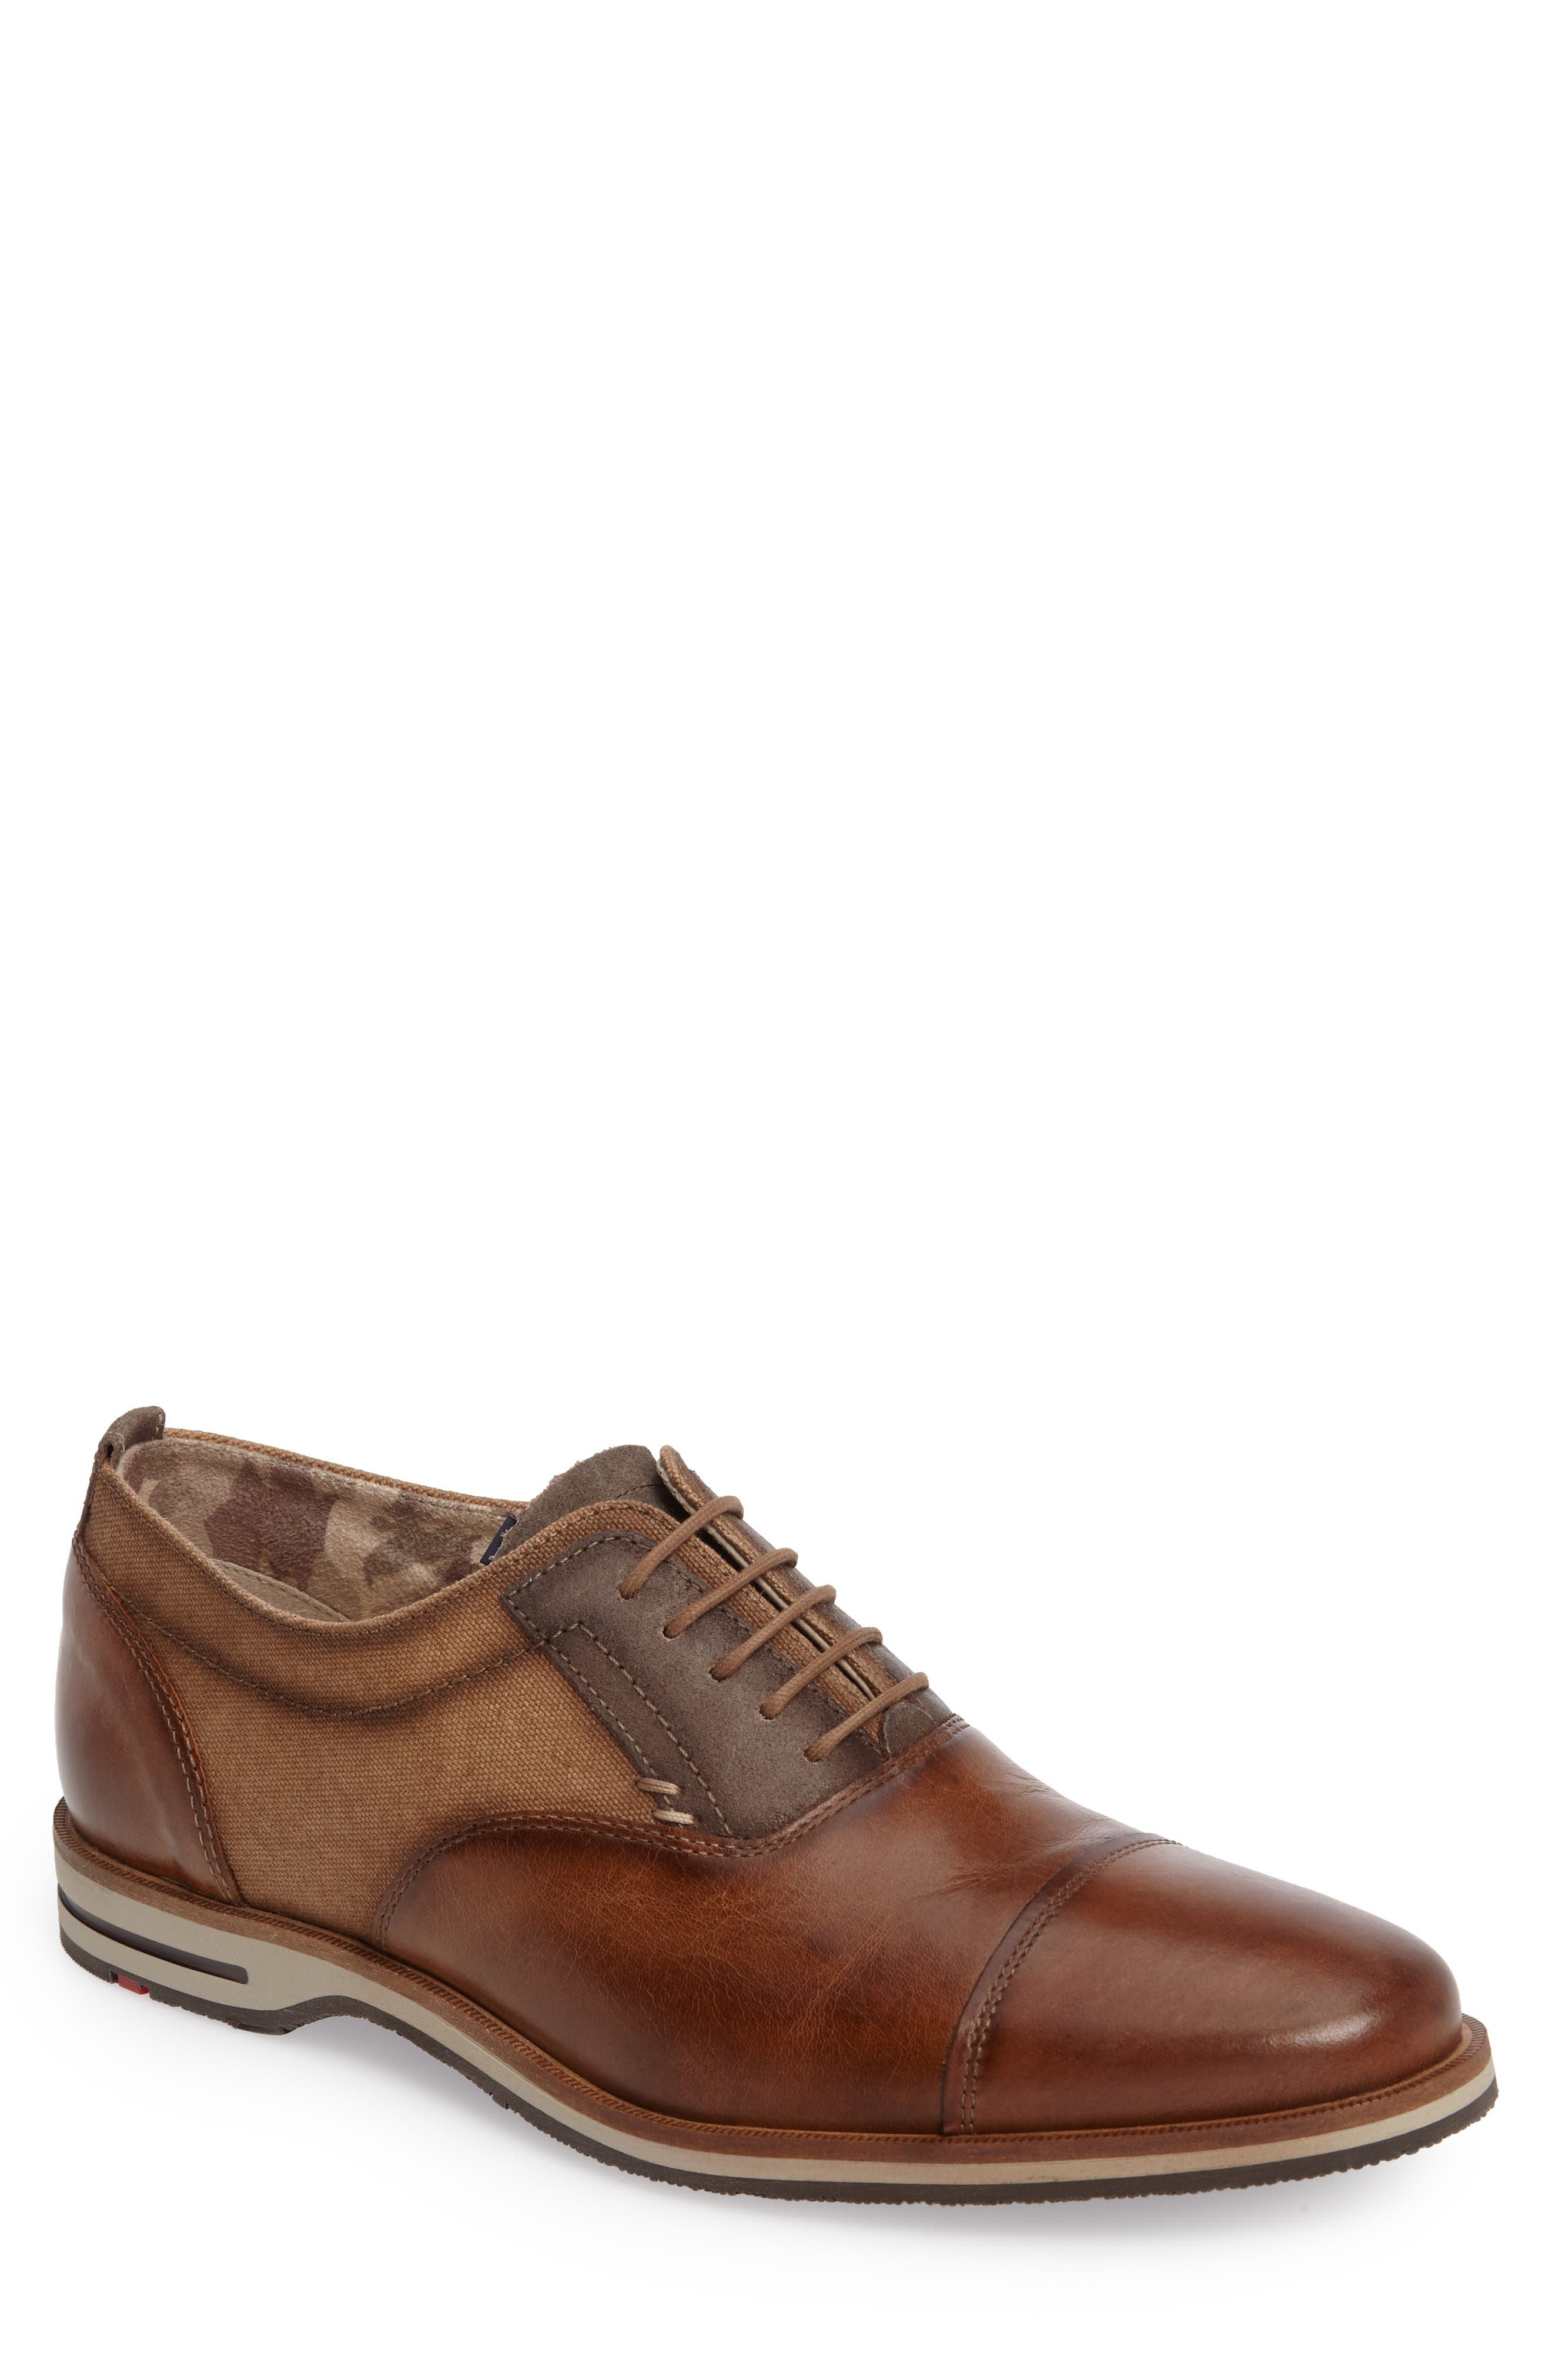 Lloyd Denton Cap Toe Oxford (Men)